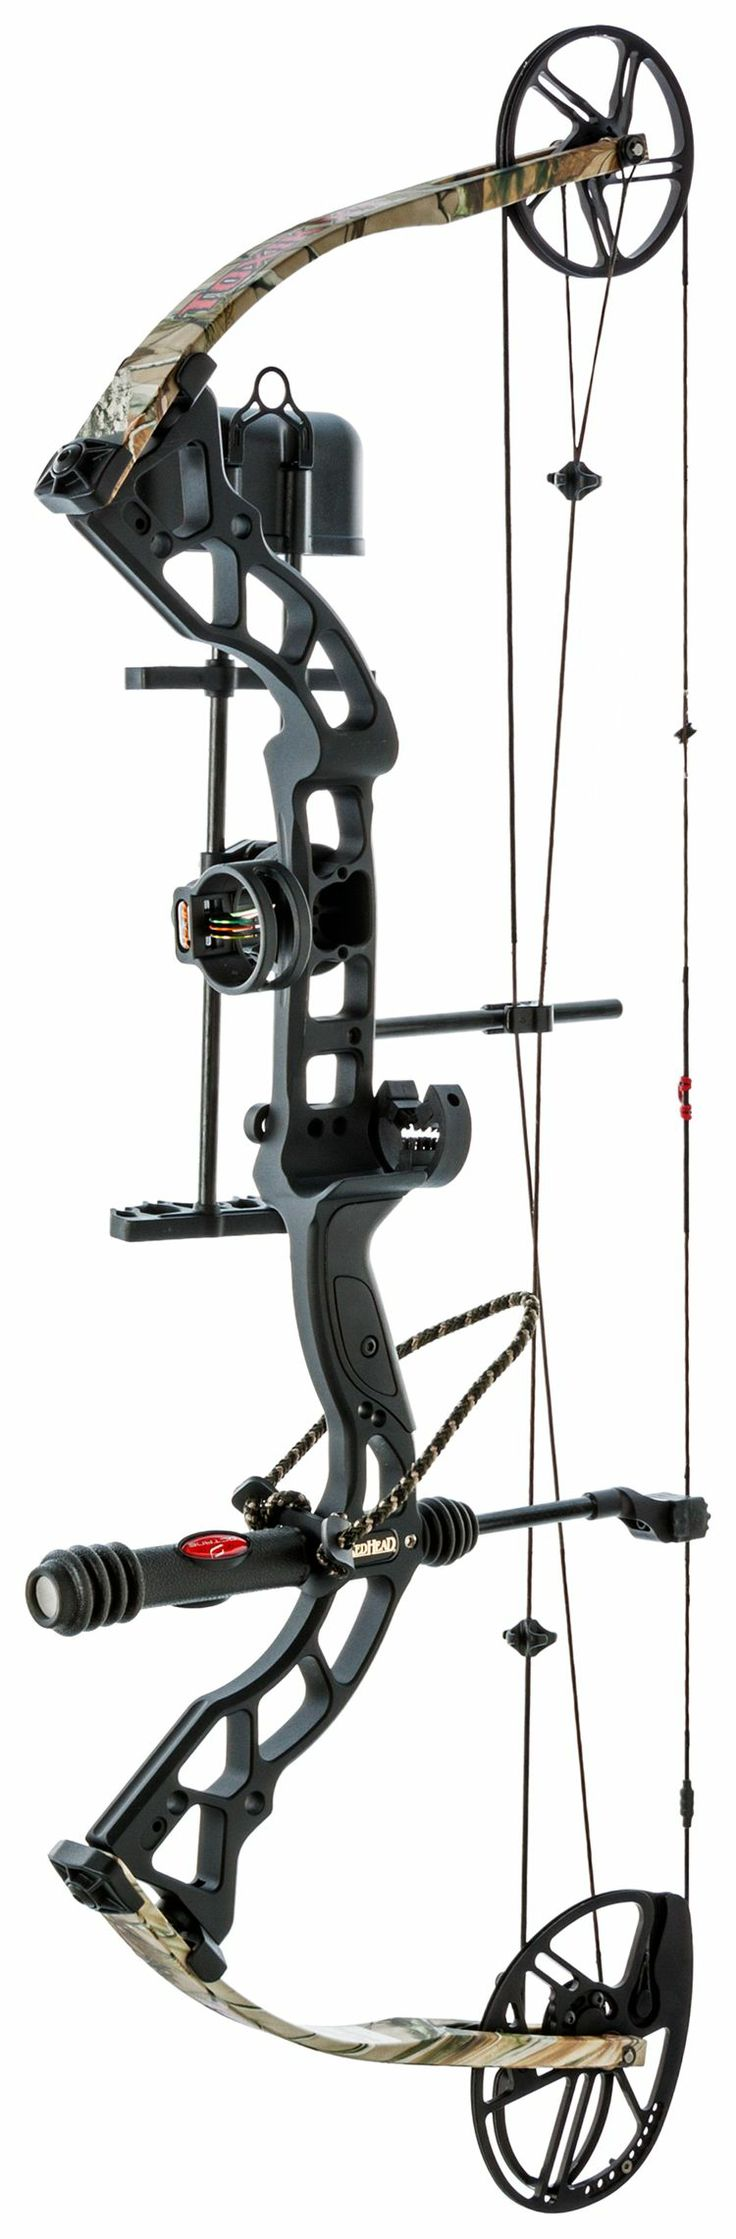 Redhead kronik compound bow phone porn naked